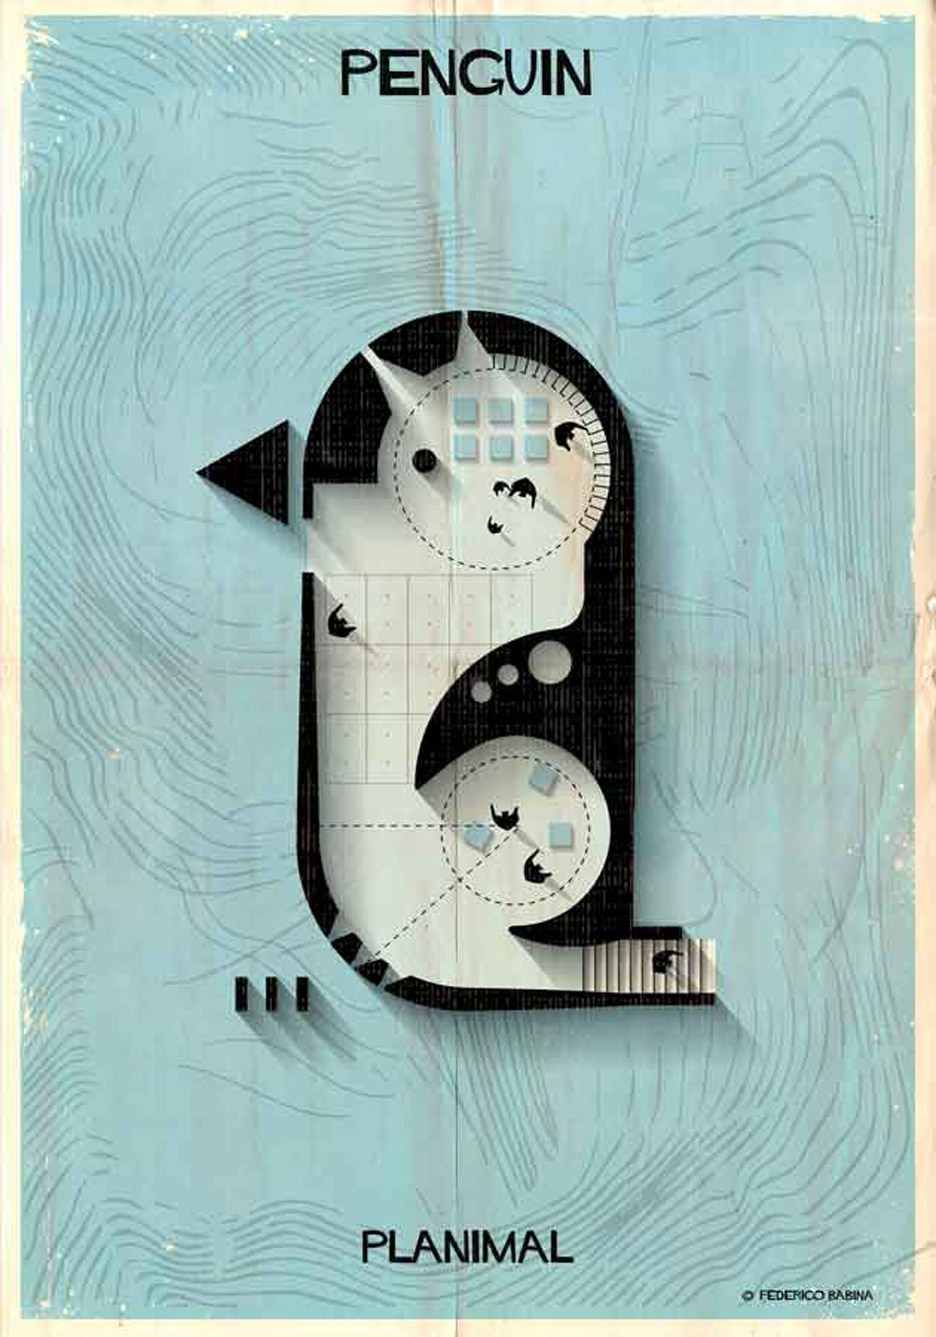 planimals-federico-babina-architecture-illustrations-design-_dezeen_936_col_24